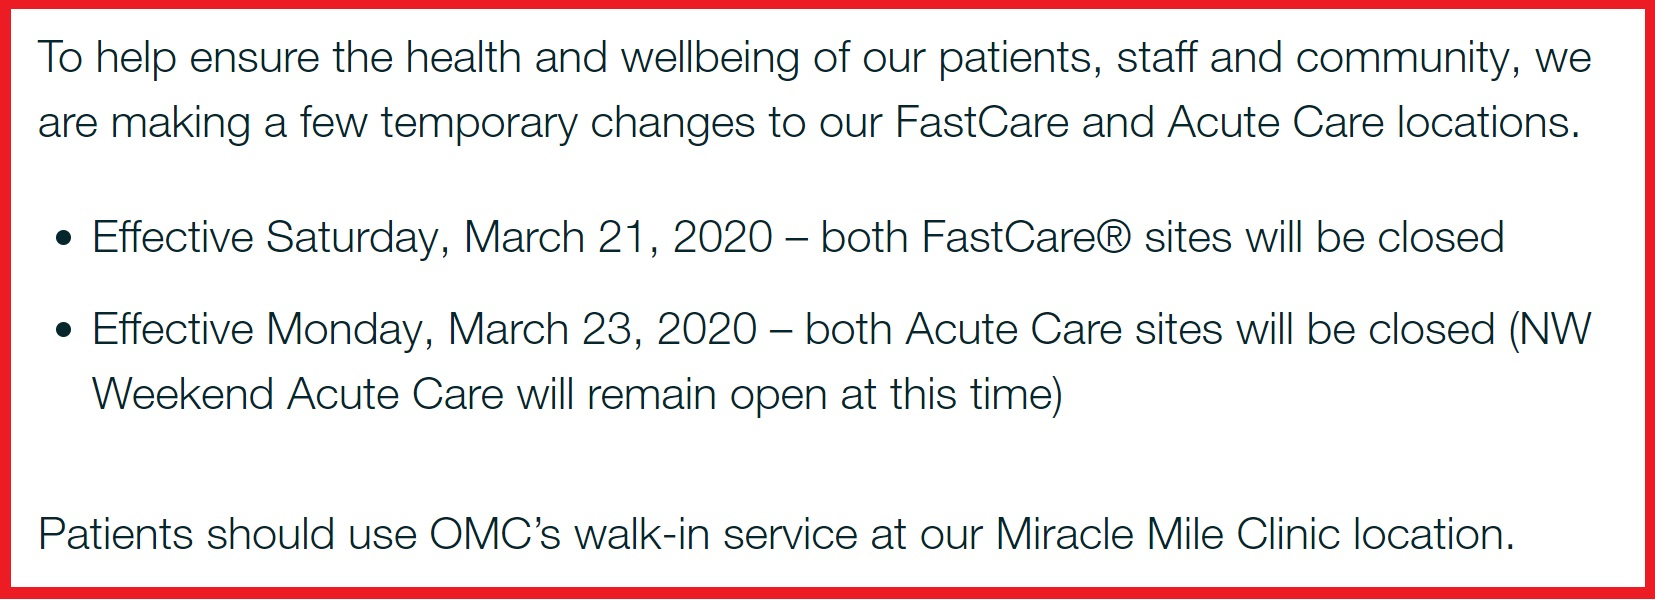 Announcement about FastCare and Acute Care during COVID-19